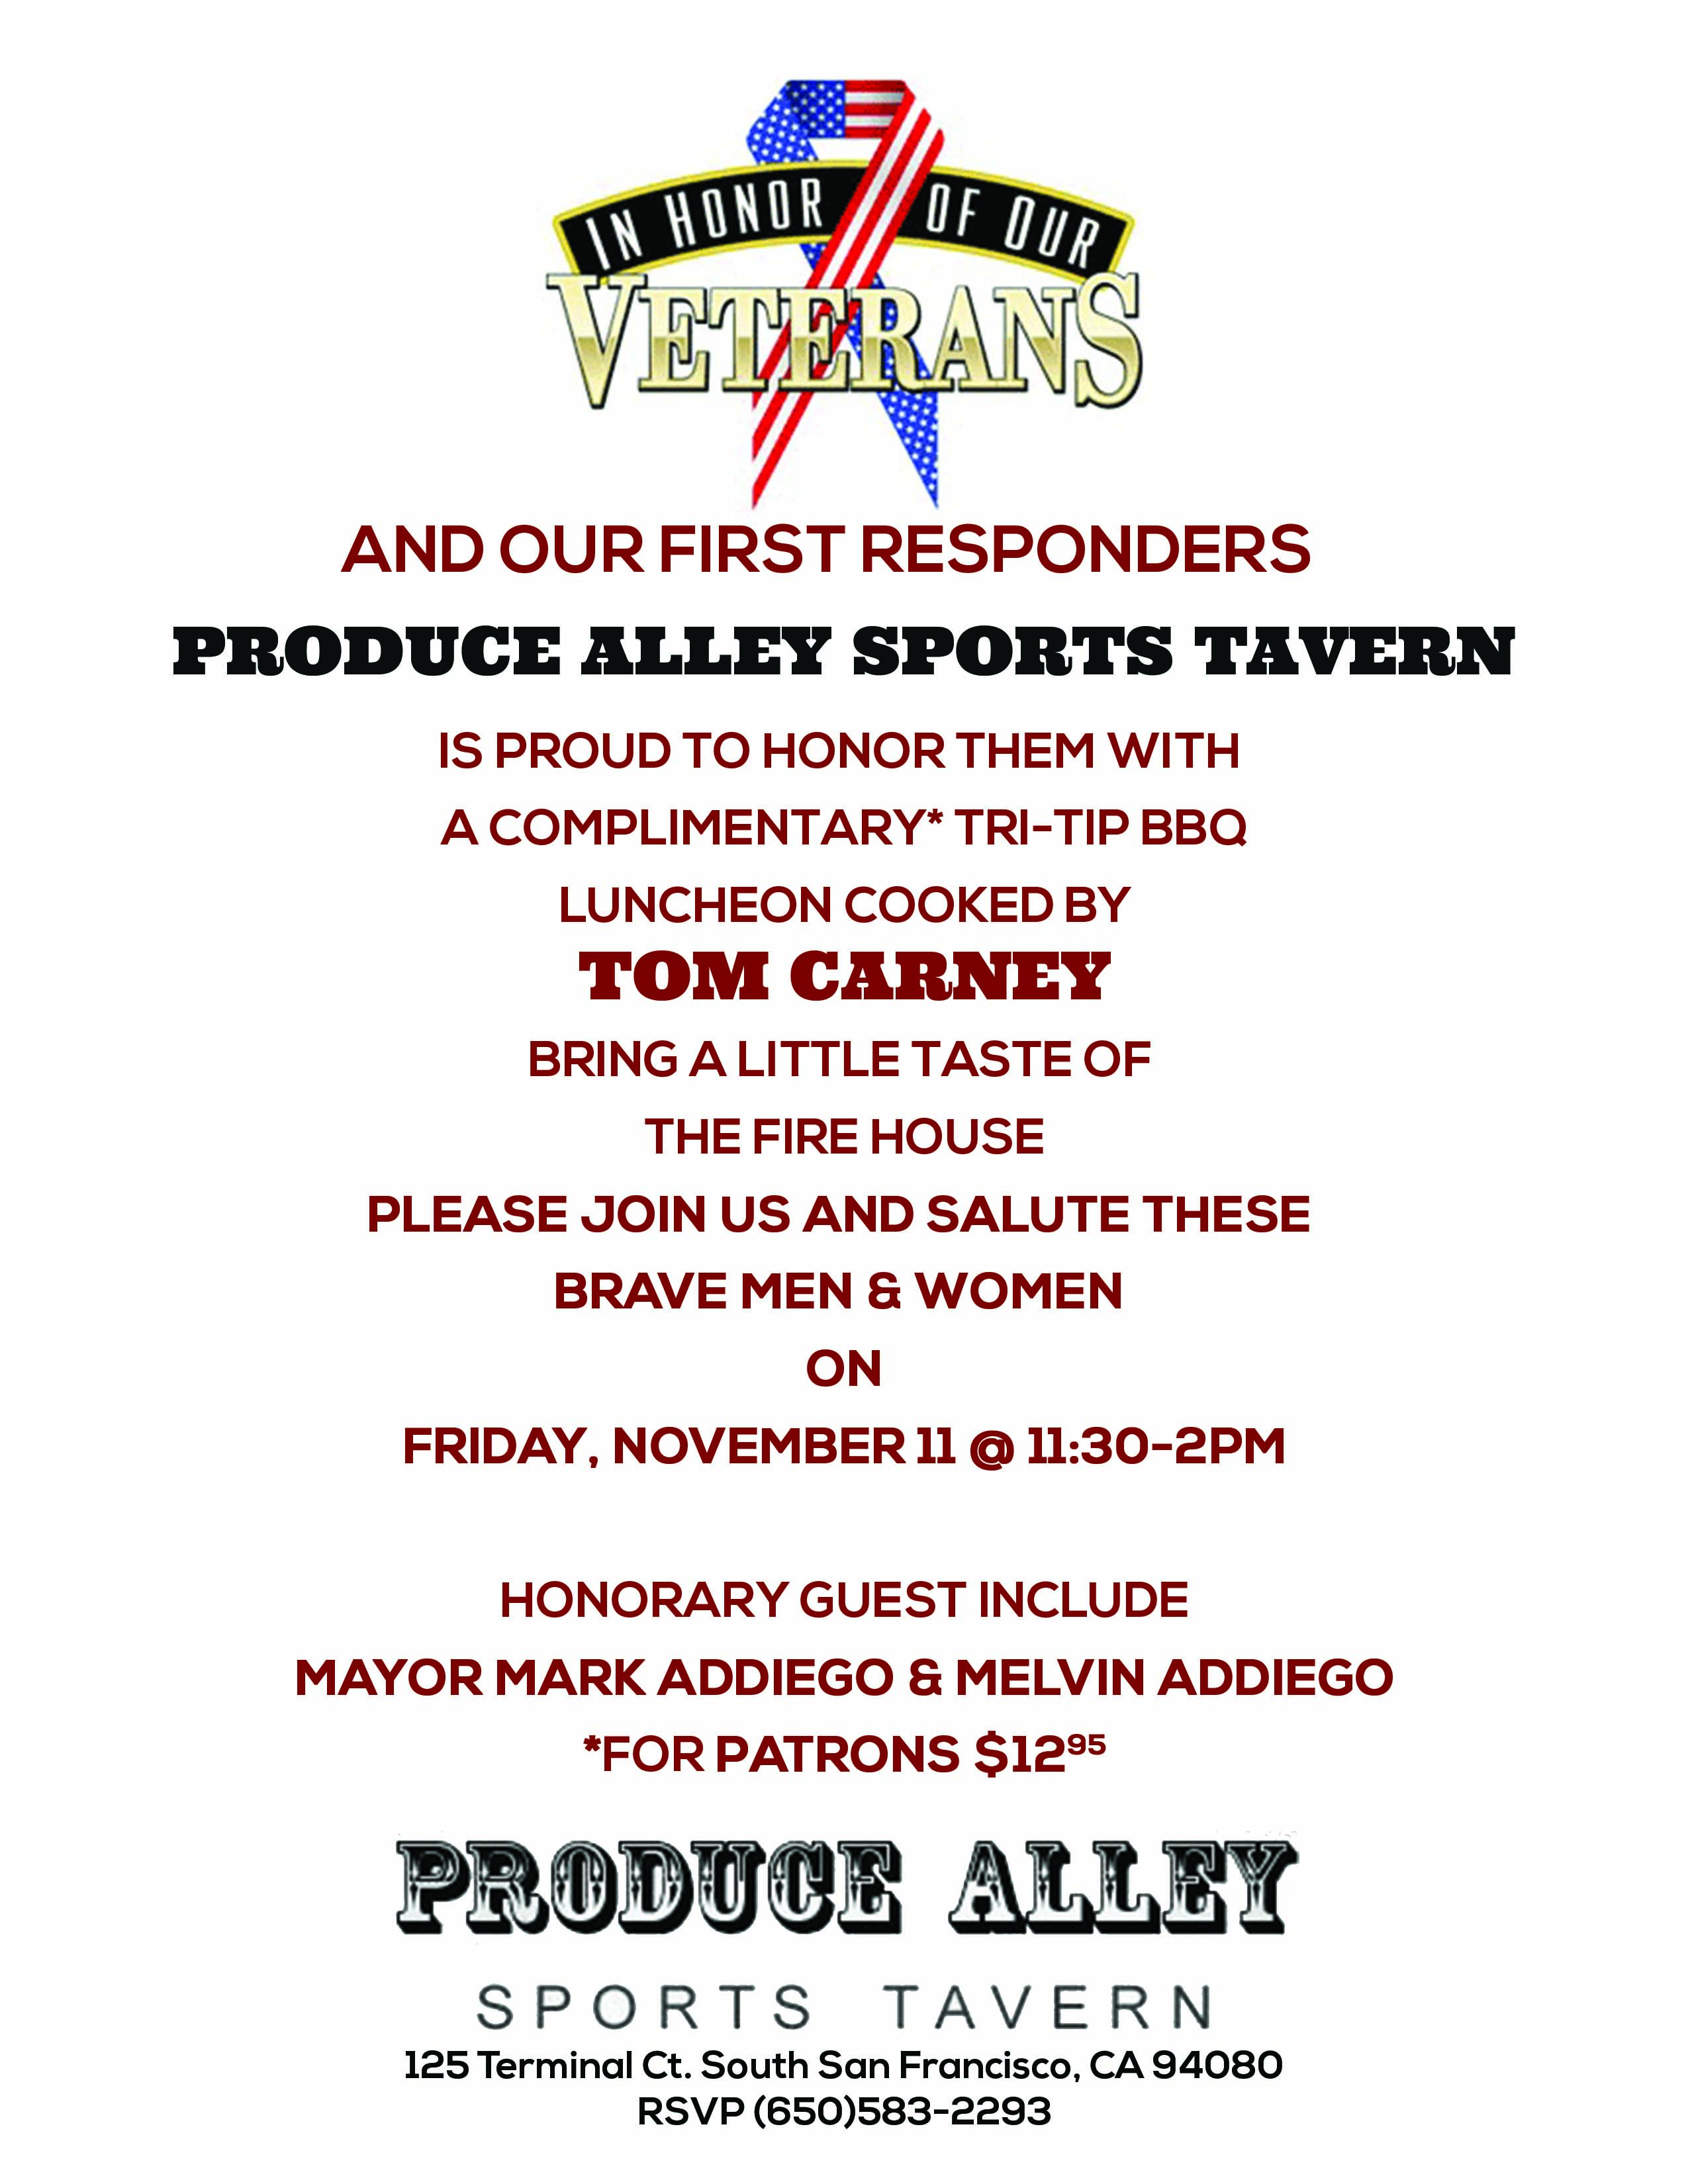 Veterans & First Responders to be Honored by Produce Alley Sports Tavern: Tom Carney To Serve Up Tri-Tip Lunch